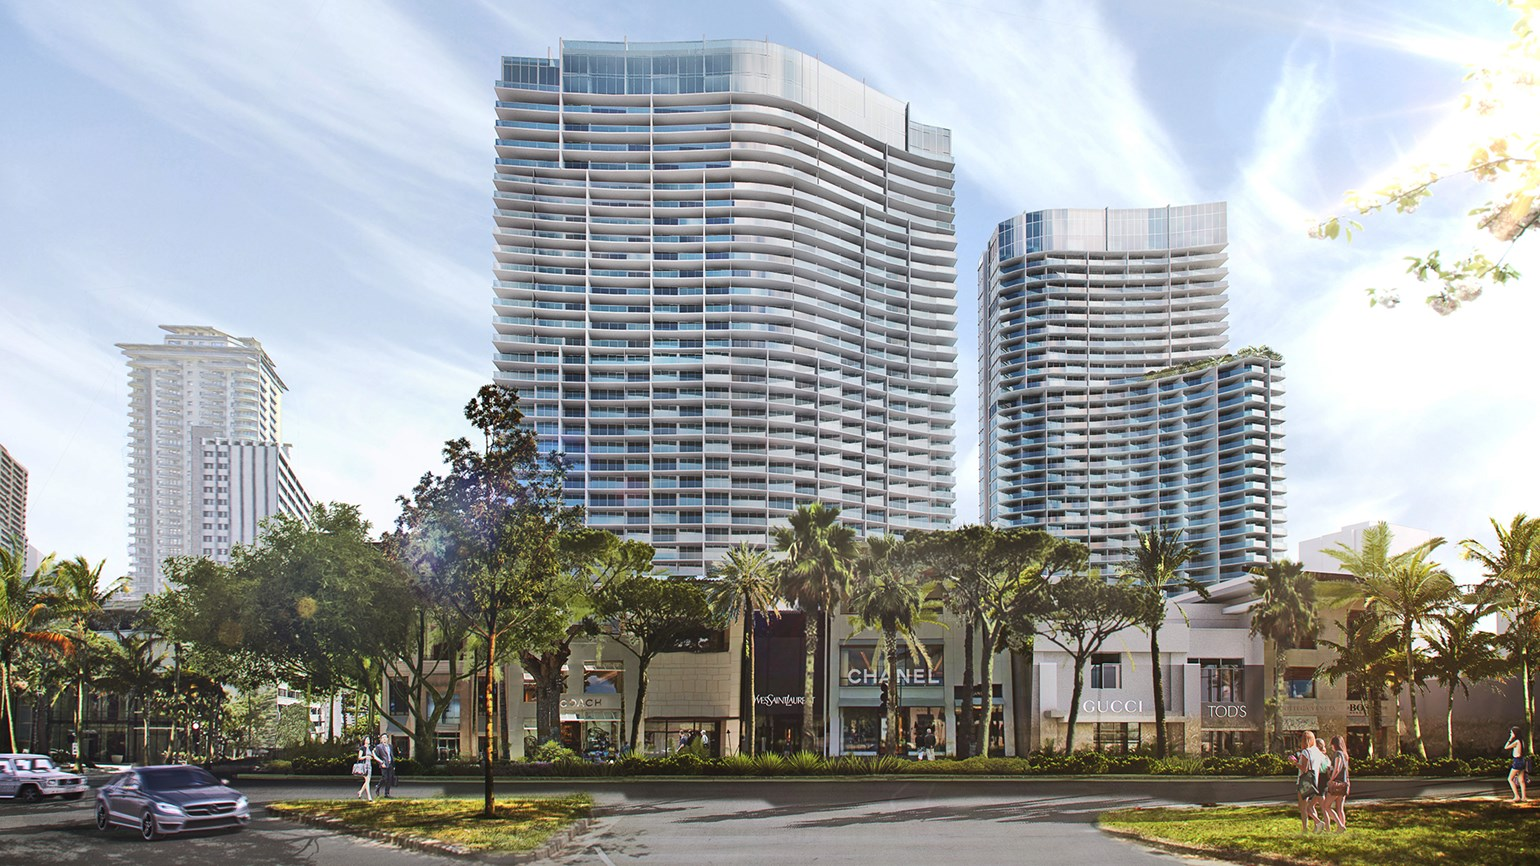 Ritz-Carlton's Waikiki property set to open in late spring